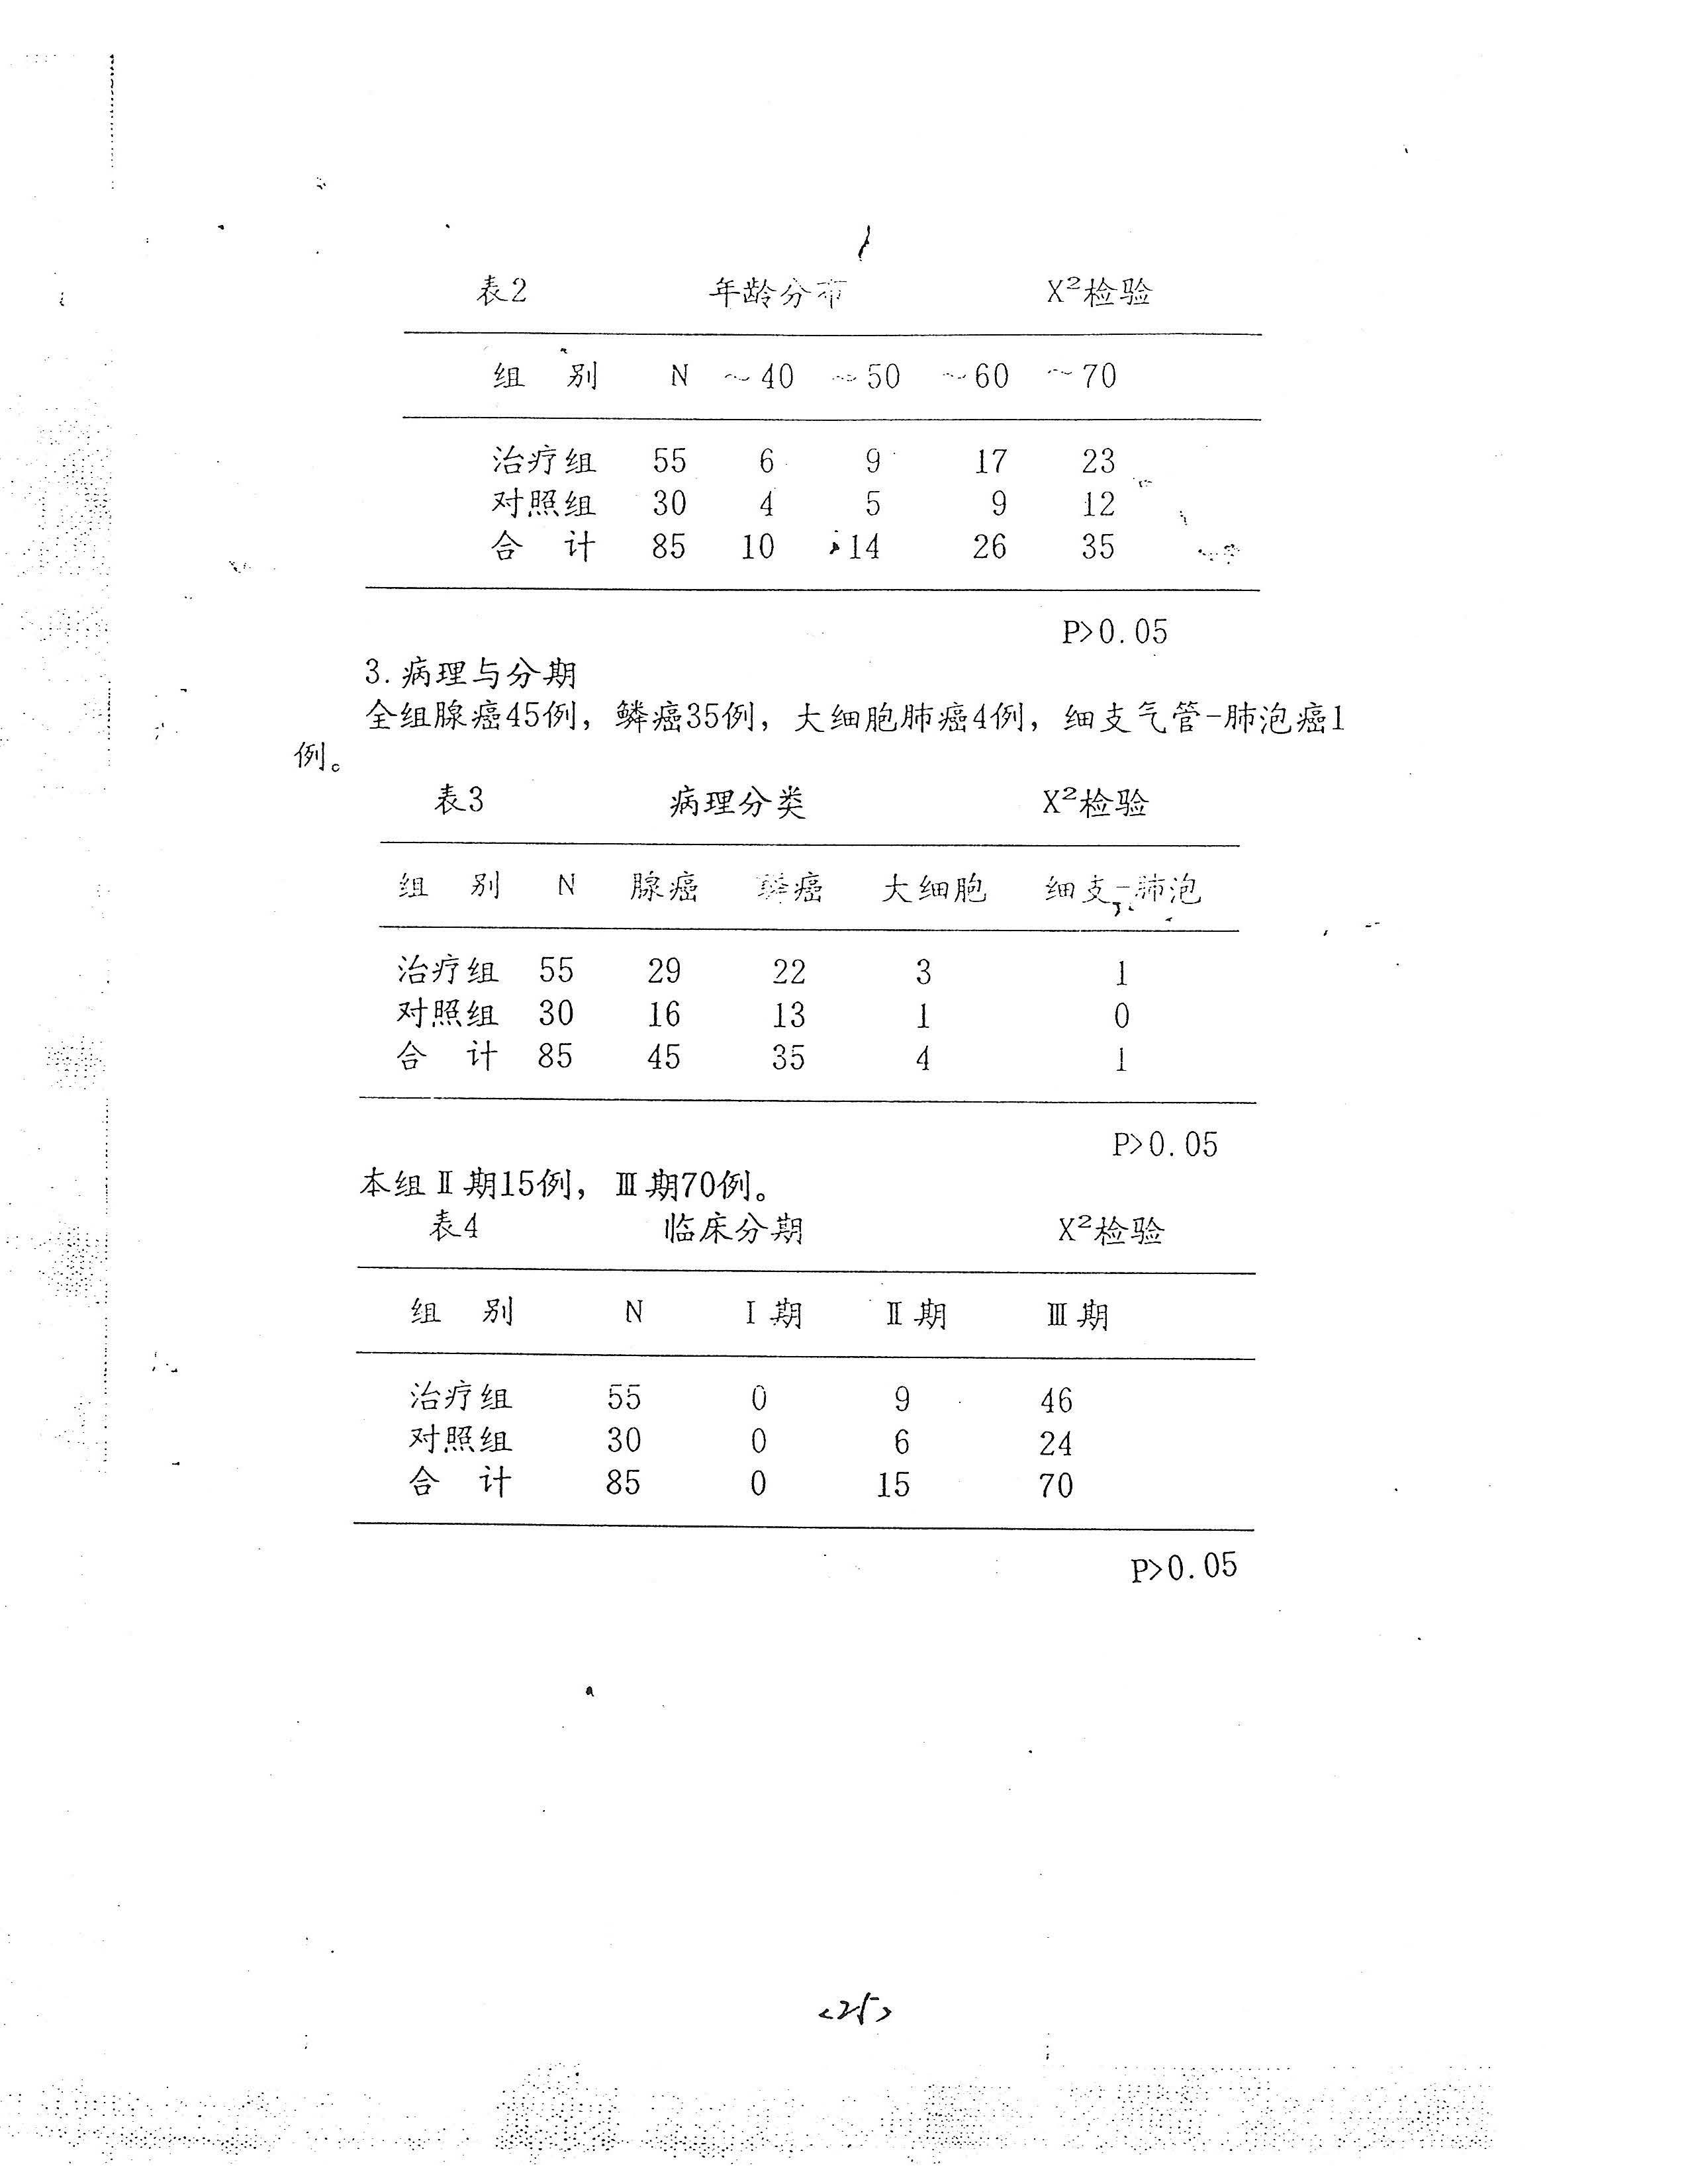 clinical_Page_27